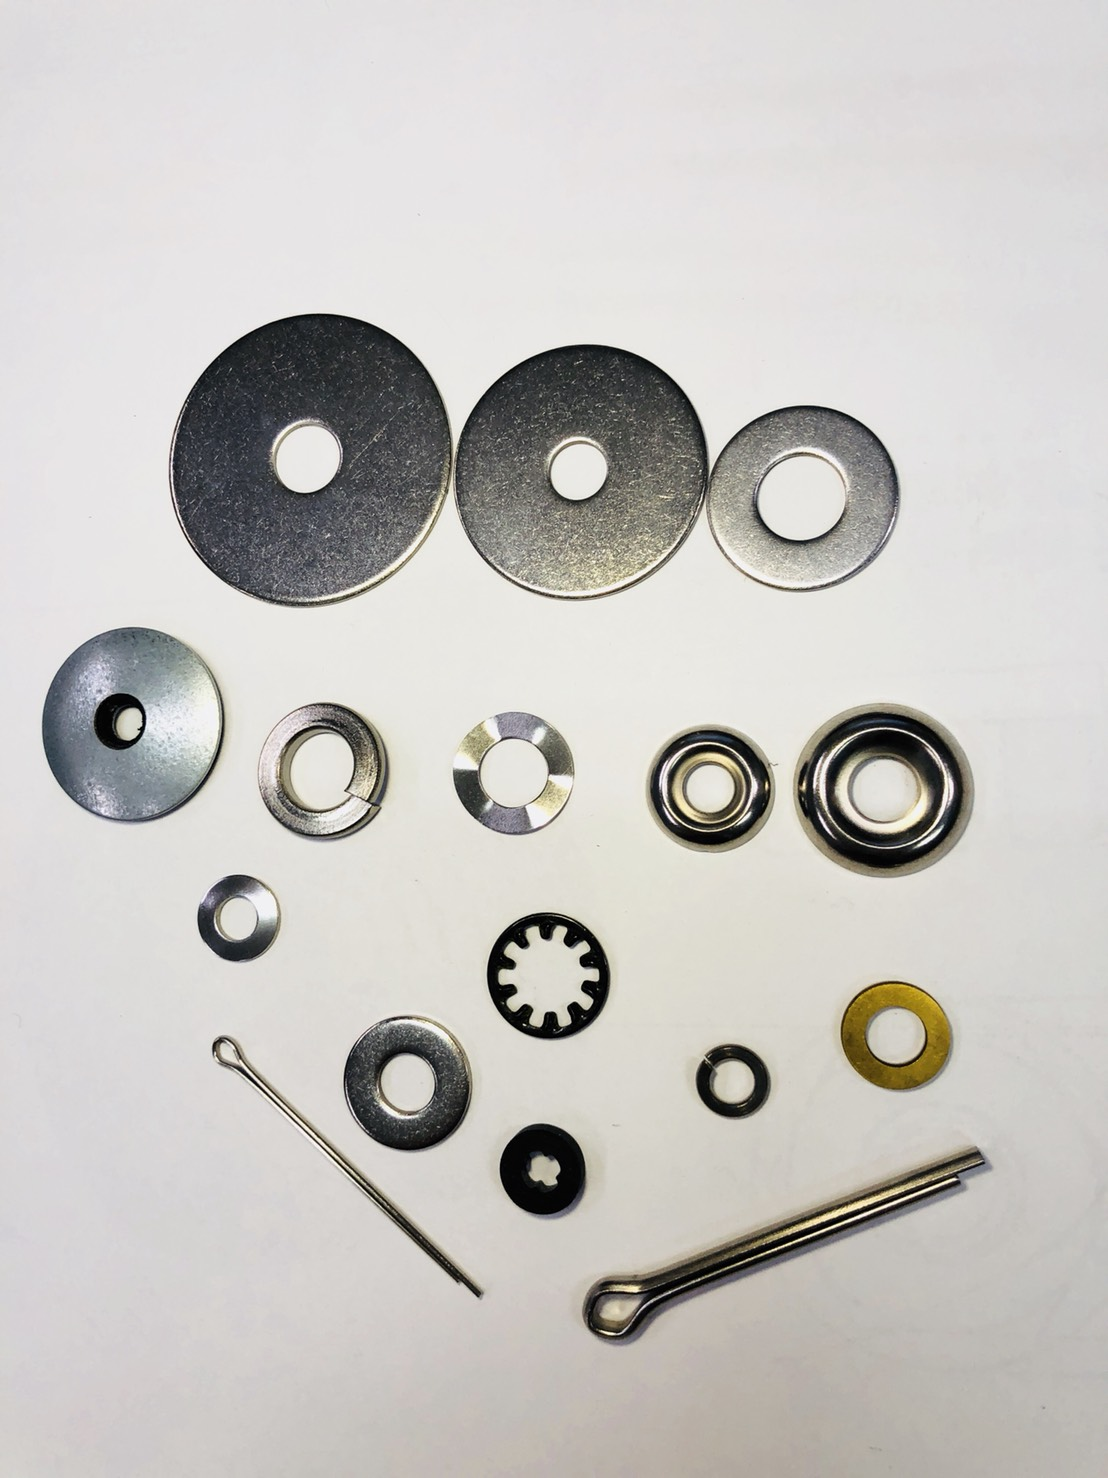 Flat Washers, Fender Washers, Cotter Pins, Hinge Pins, Cup Washers.